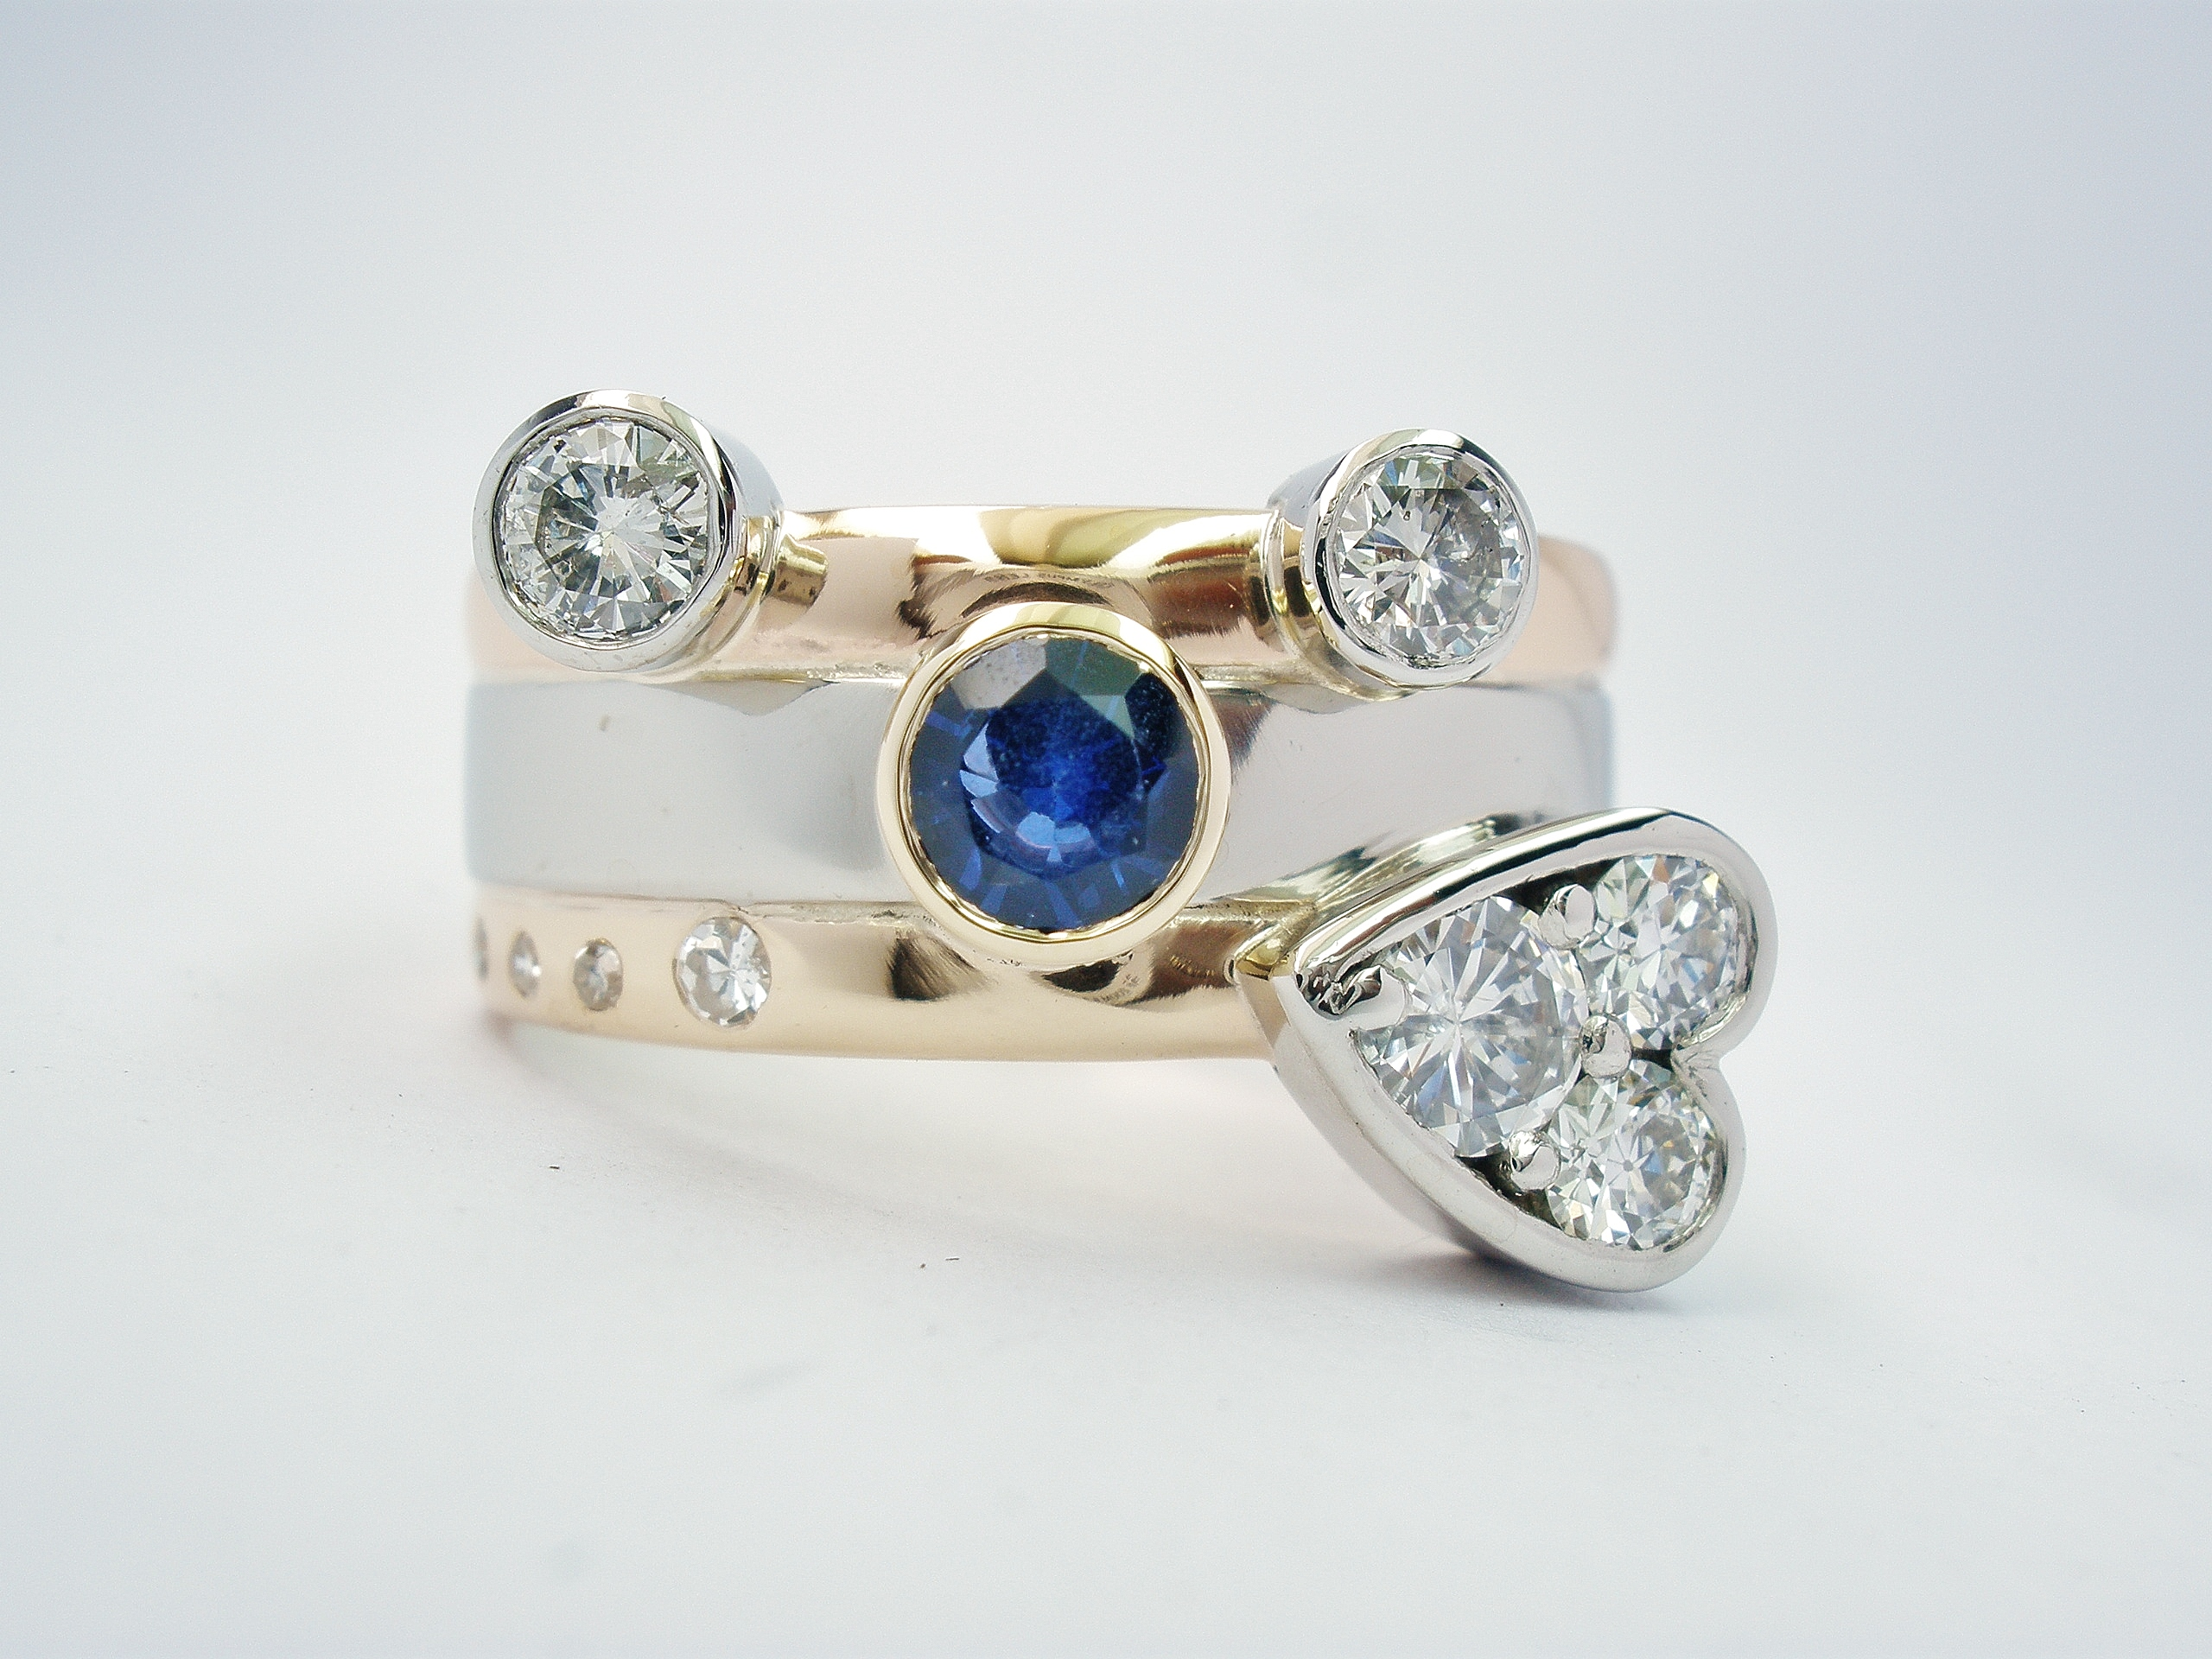 The clients brief was to include the 2 wedding rings, all the diamonds and the large sapphire and she wanted a heart shape somewhere on the ring.